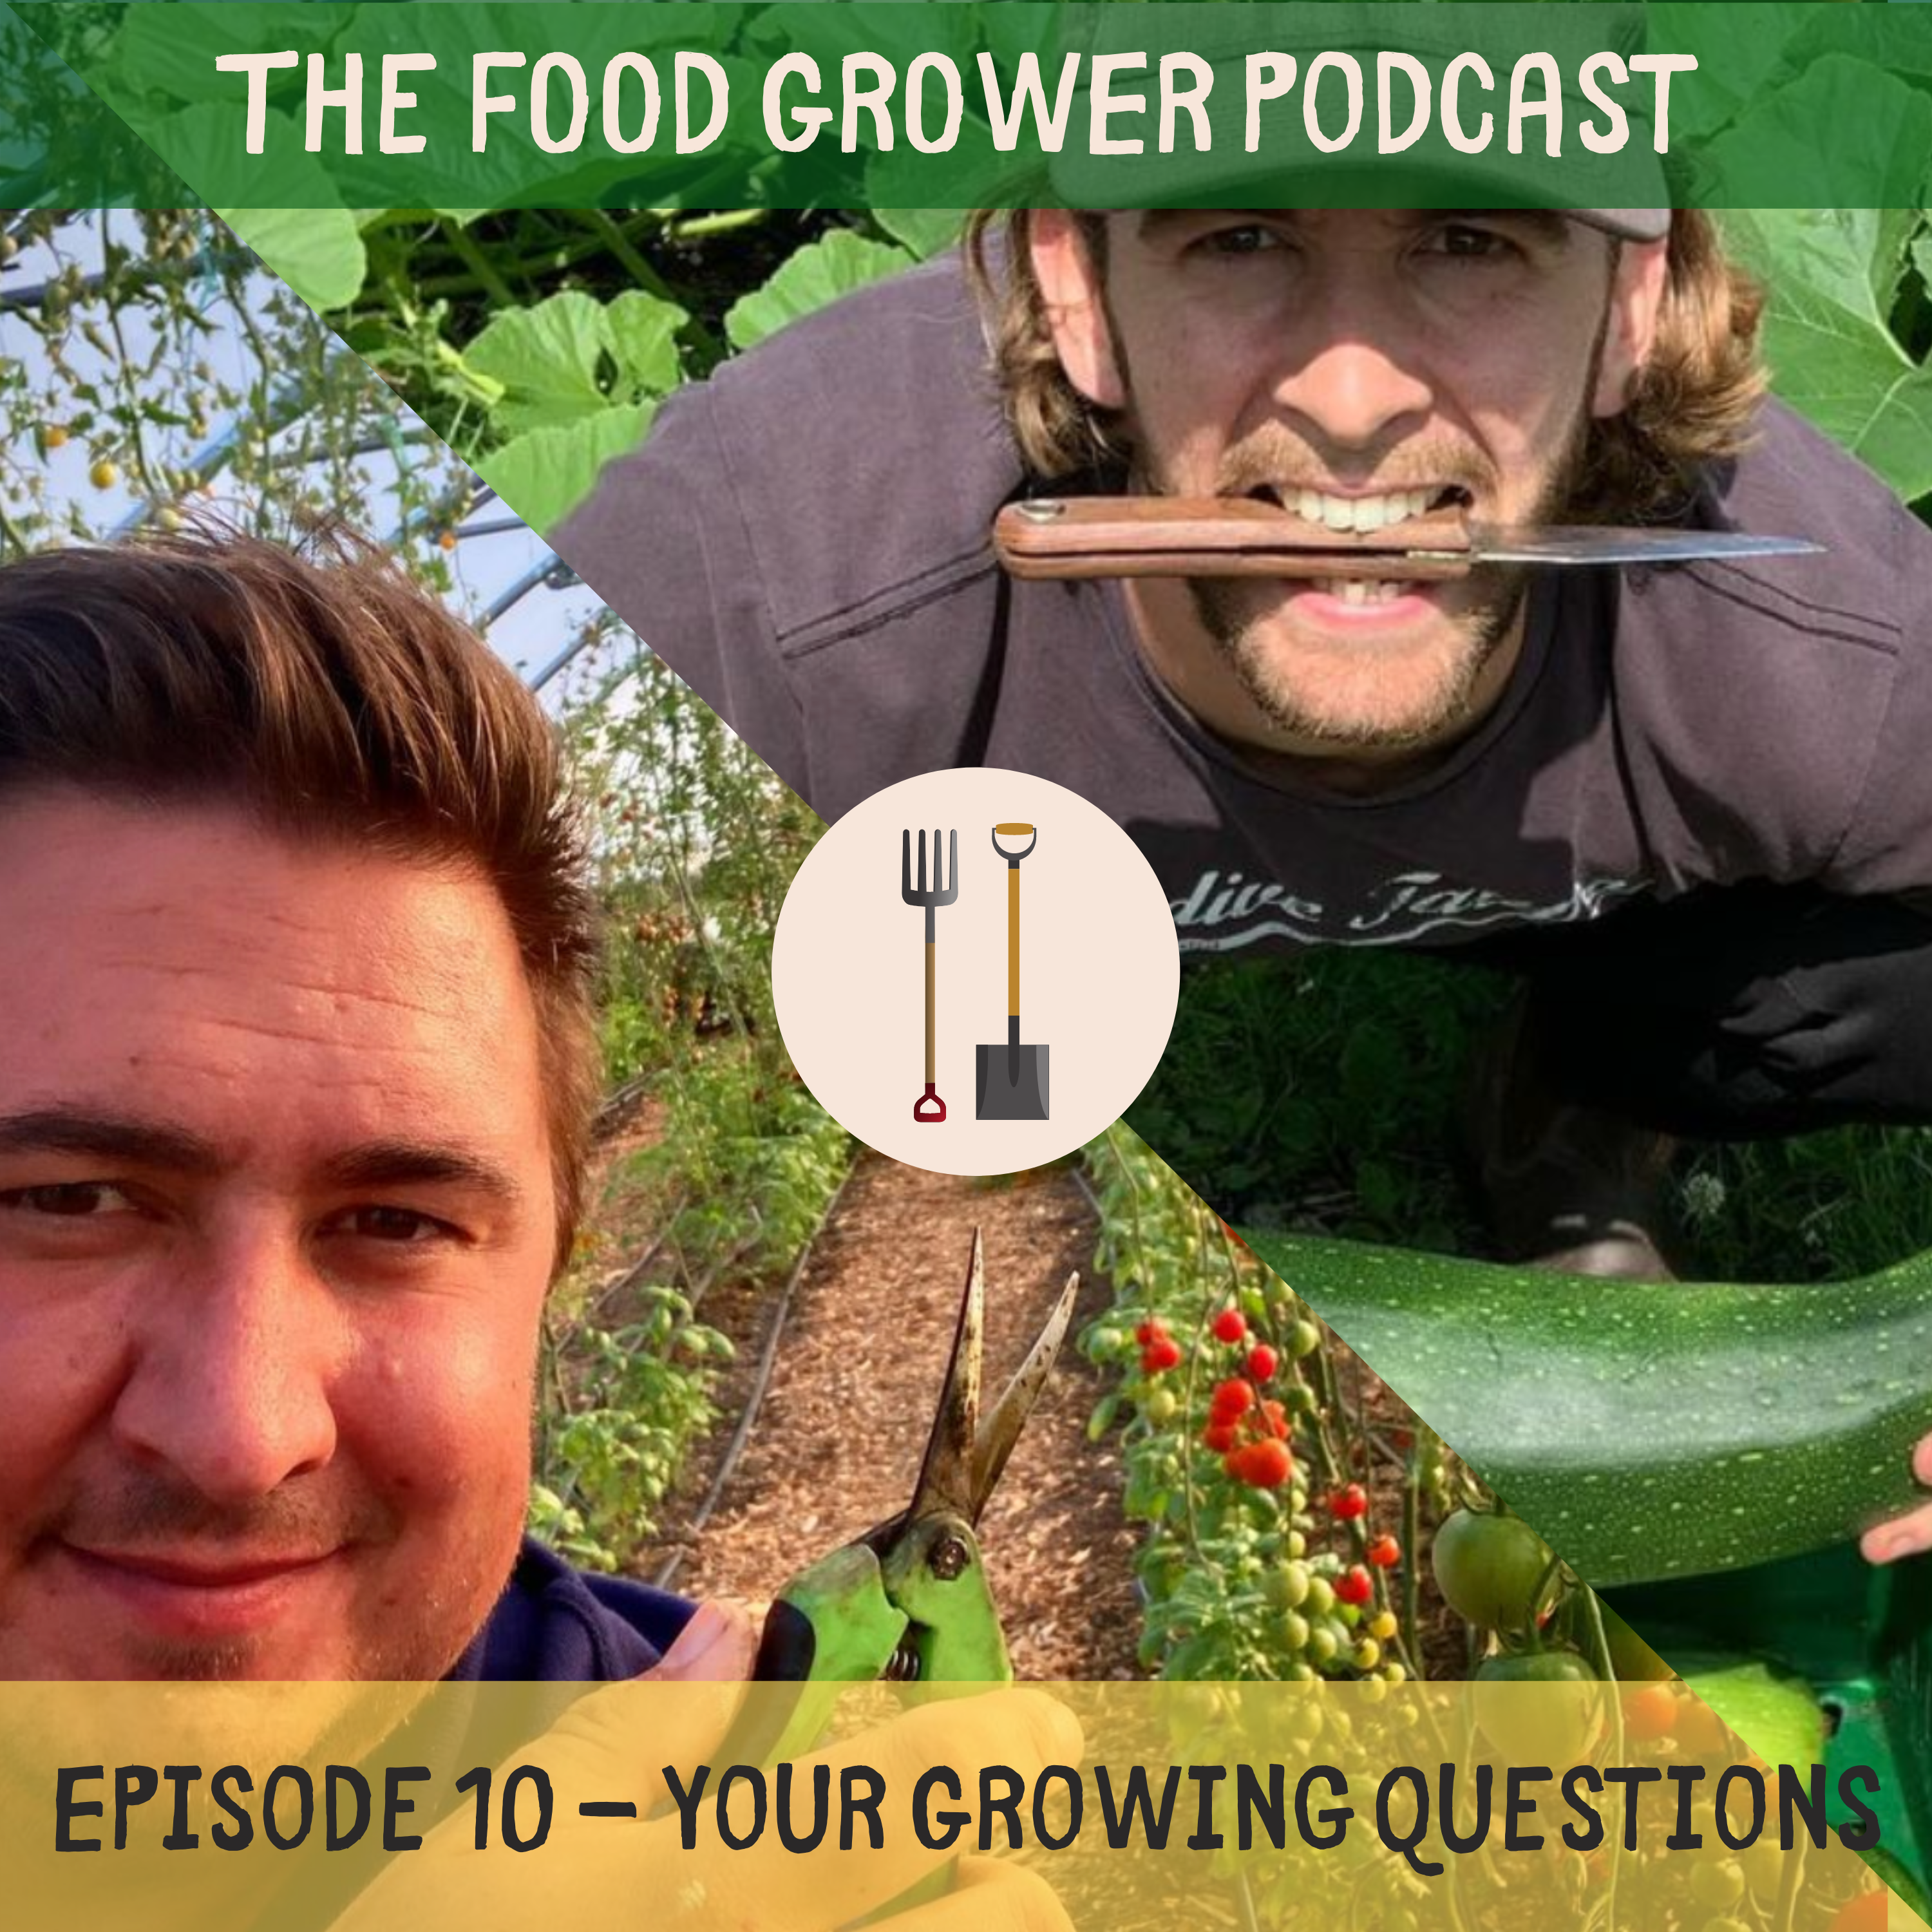 Food Grower Podcast Grower Questions